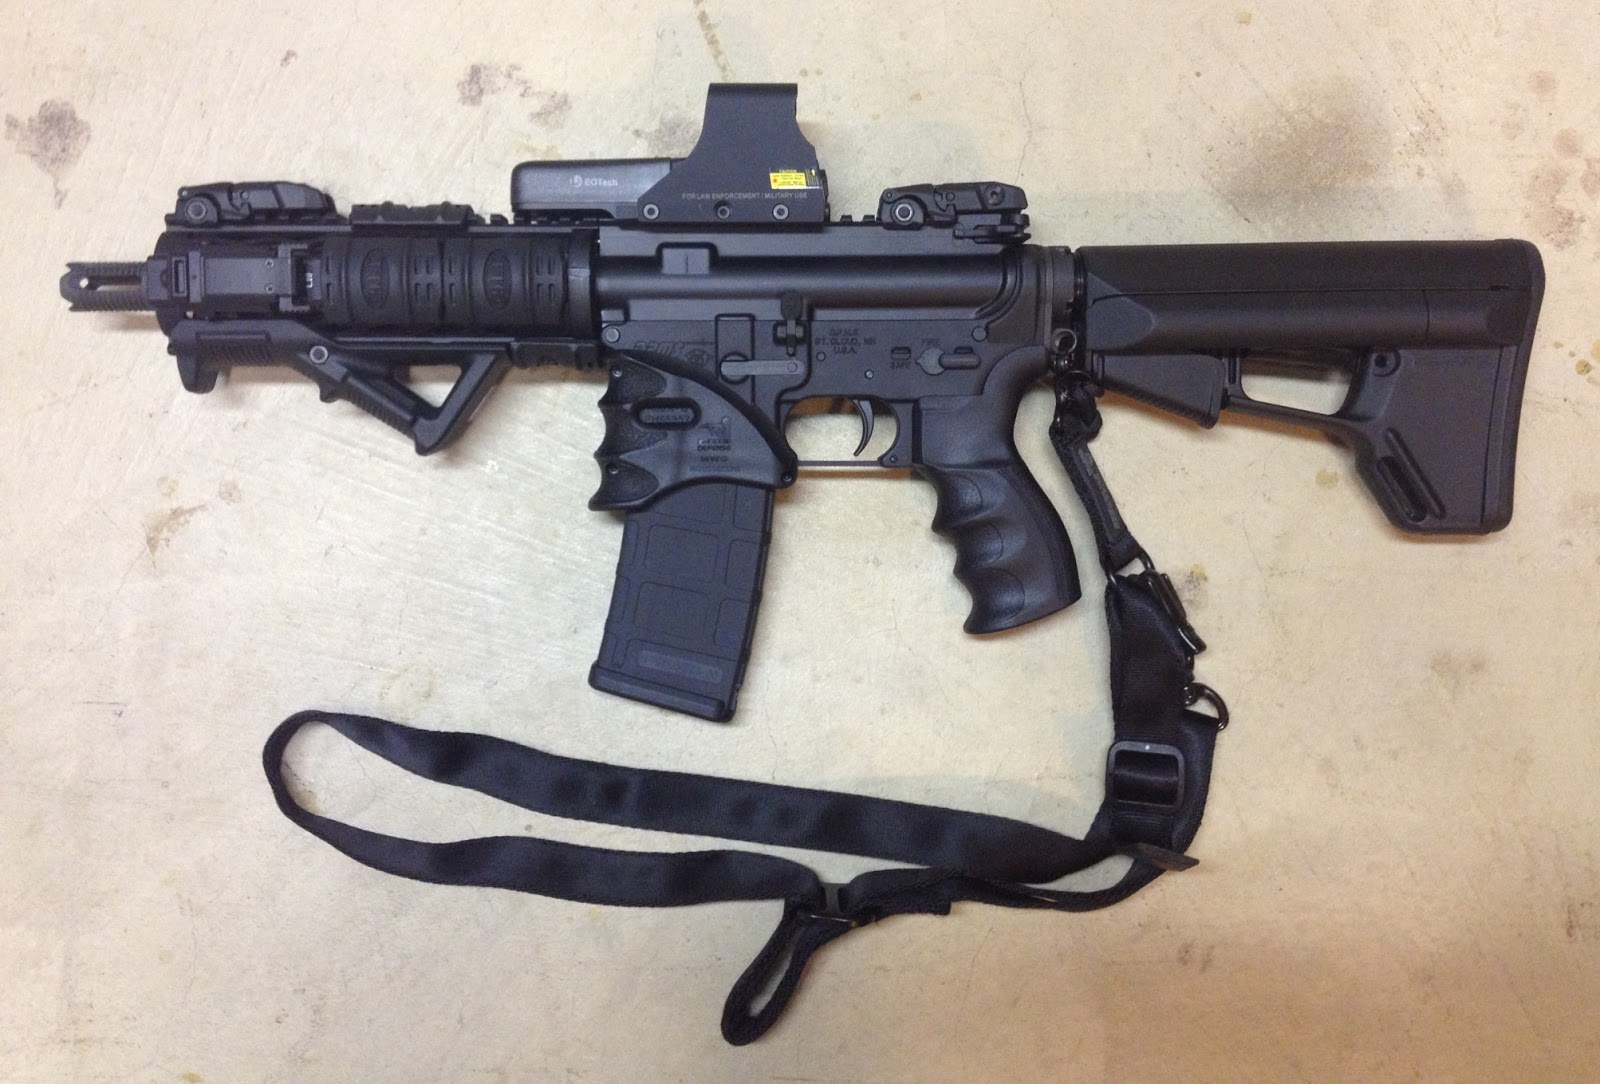 How to Build a Short-Barreled Rifle (SBR)